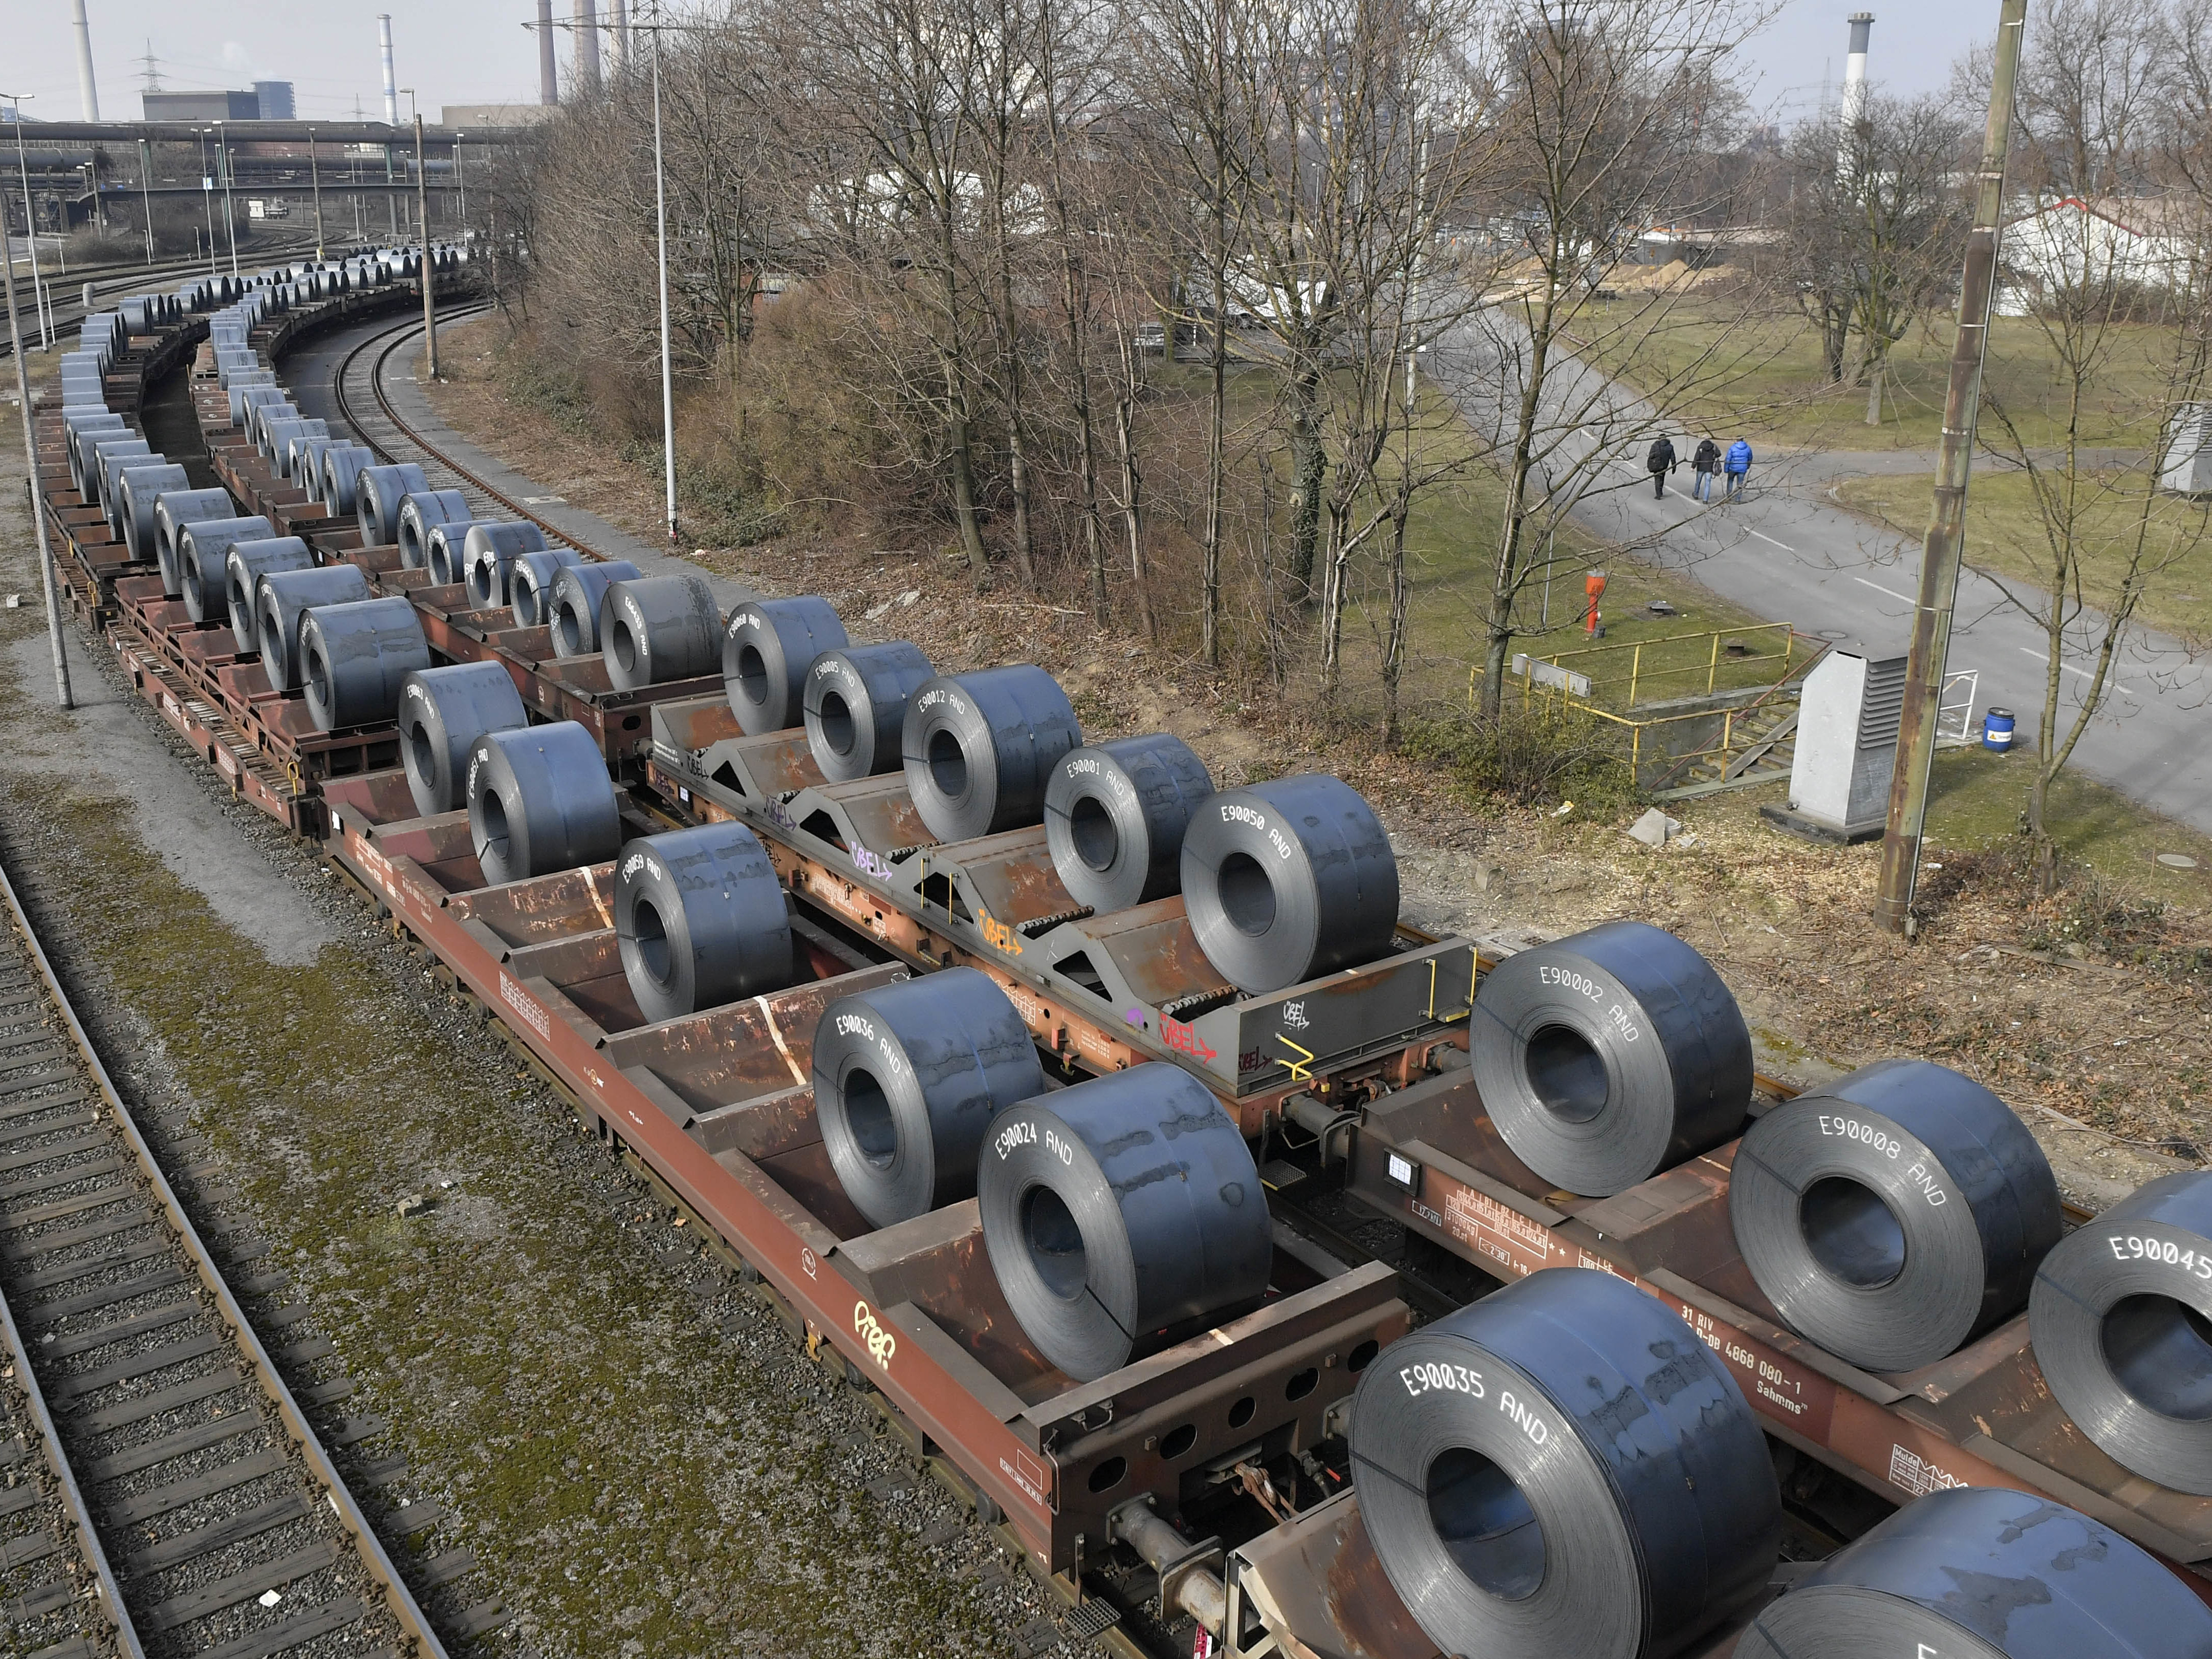 Steel coils sit on wagons leaving a factory in Duisburg, Germanyon March 2. U.S. President Trump Monday decided to hold off on imposing most steel and aluminum tariffs until at least June 1